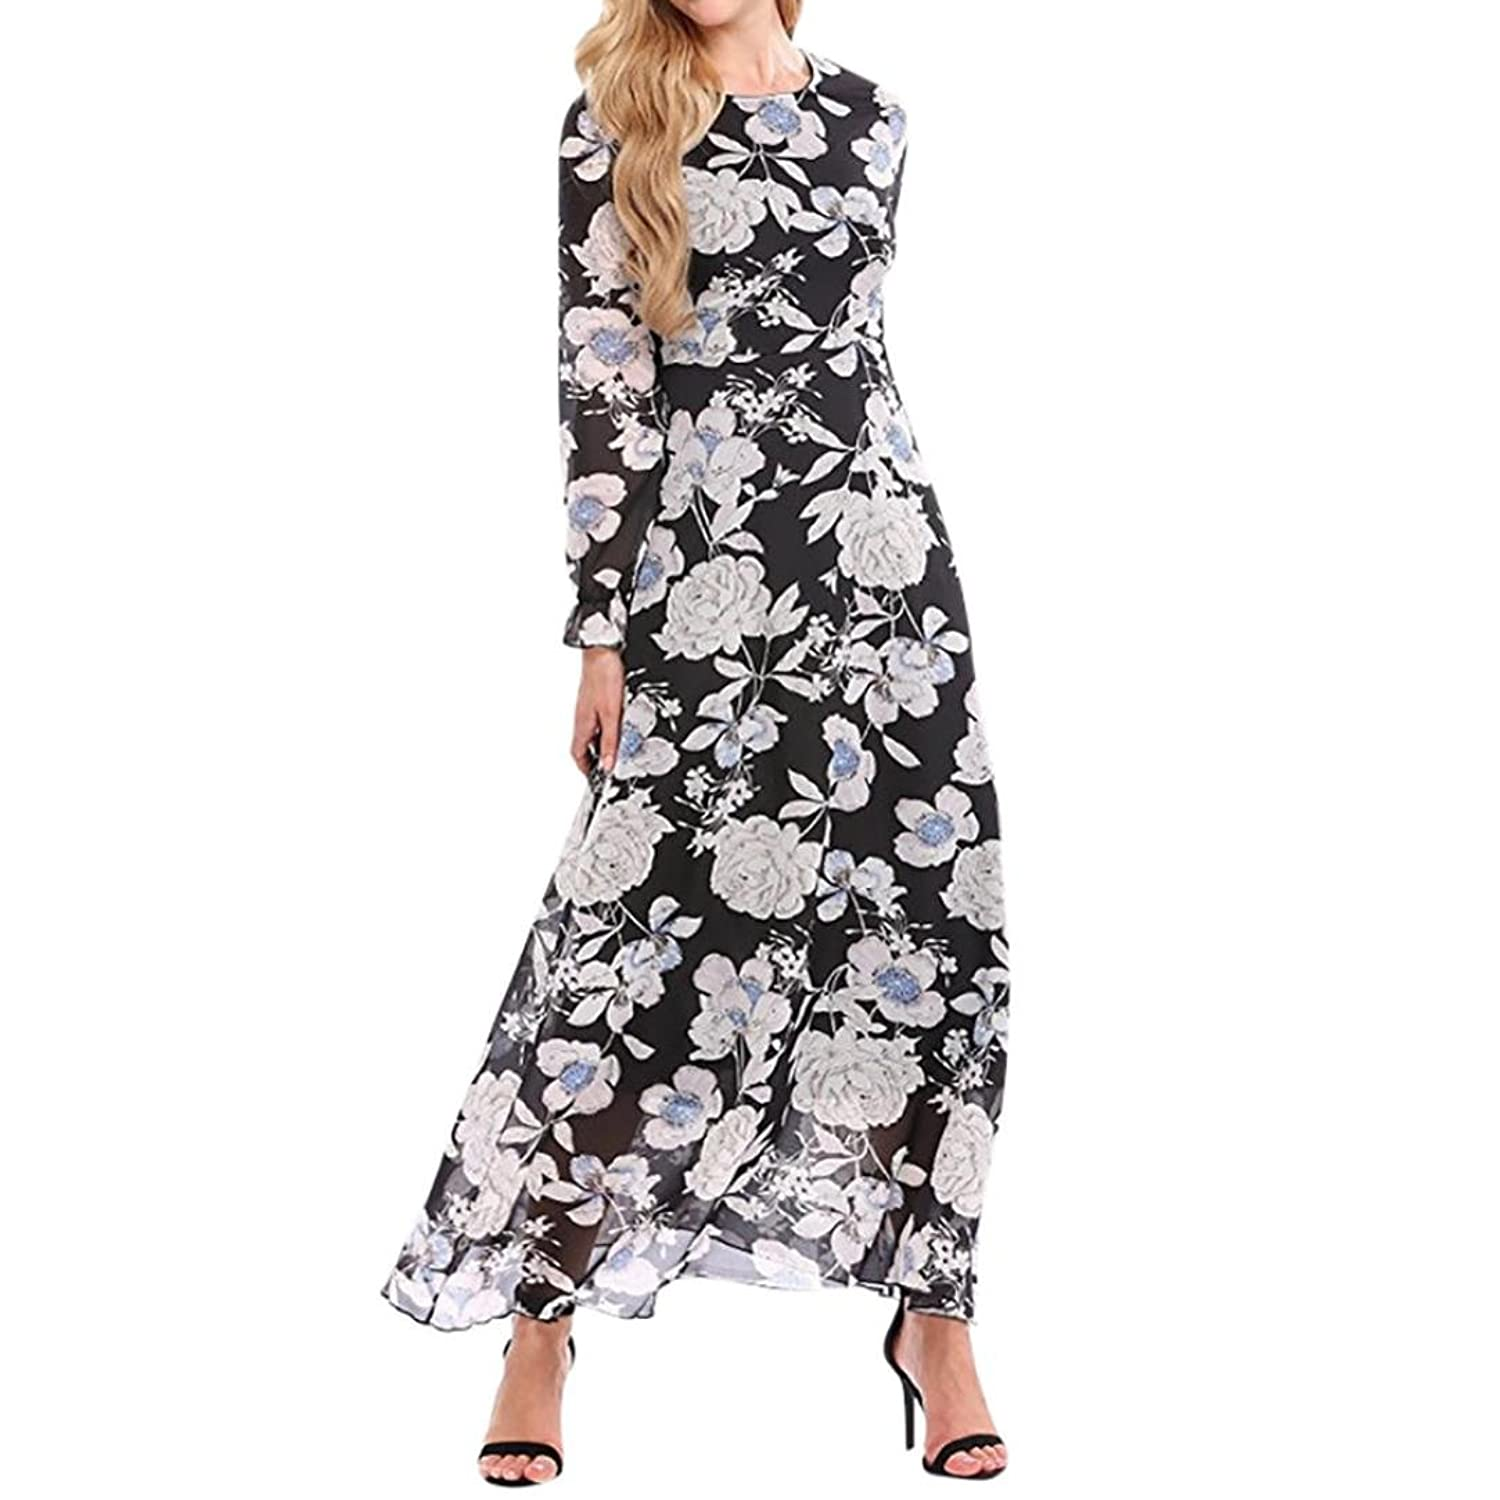 70f85527b724c Material:Polyester---women\'s a-line pleated sleeveless little cocktail  party dress with floral lace women\'s button up split floral print flowy  party maxi ...